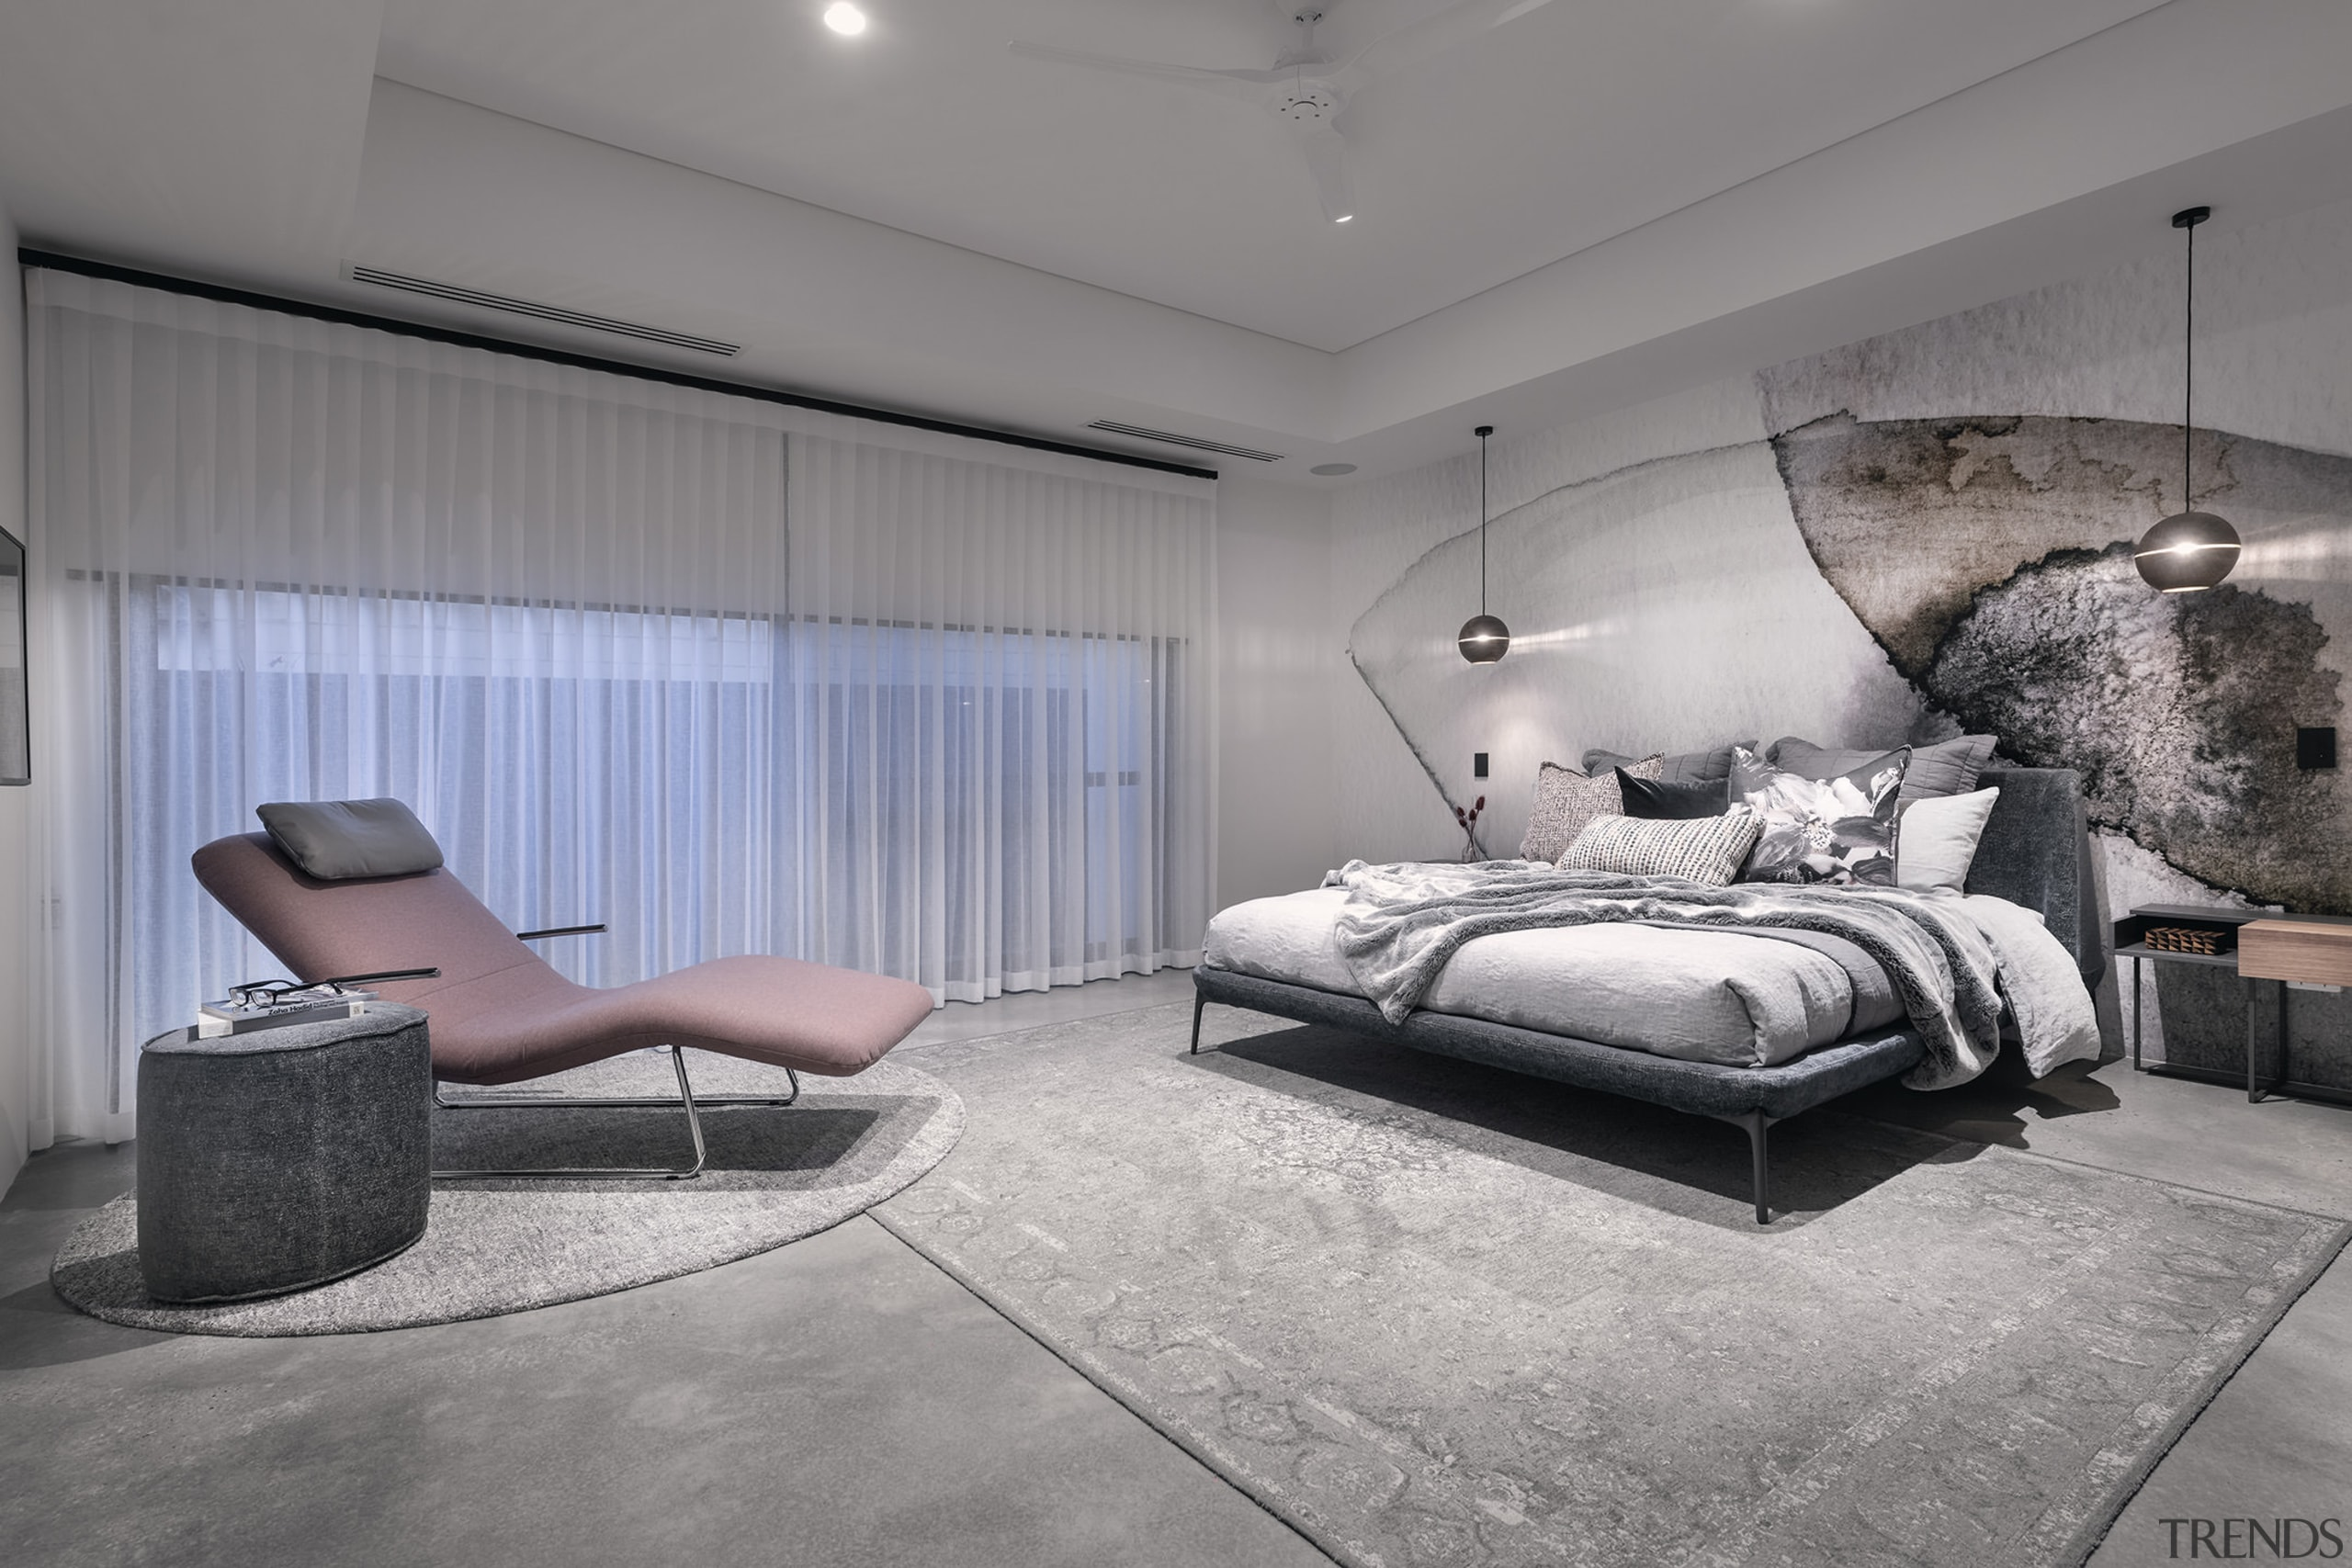 The bedroom's contemporary feature wall finish tones with